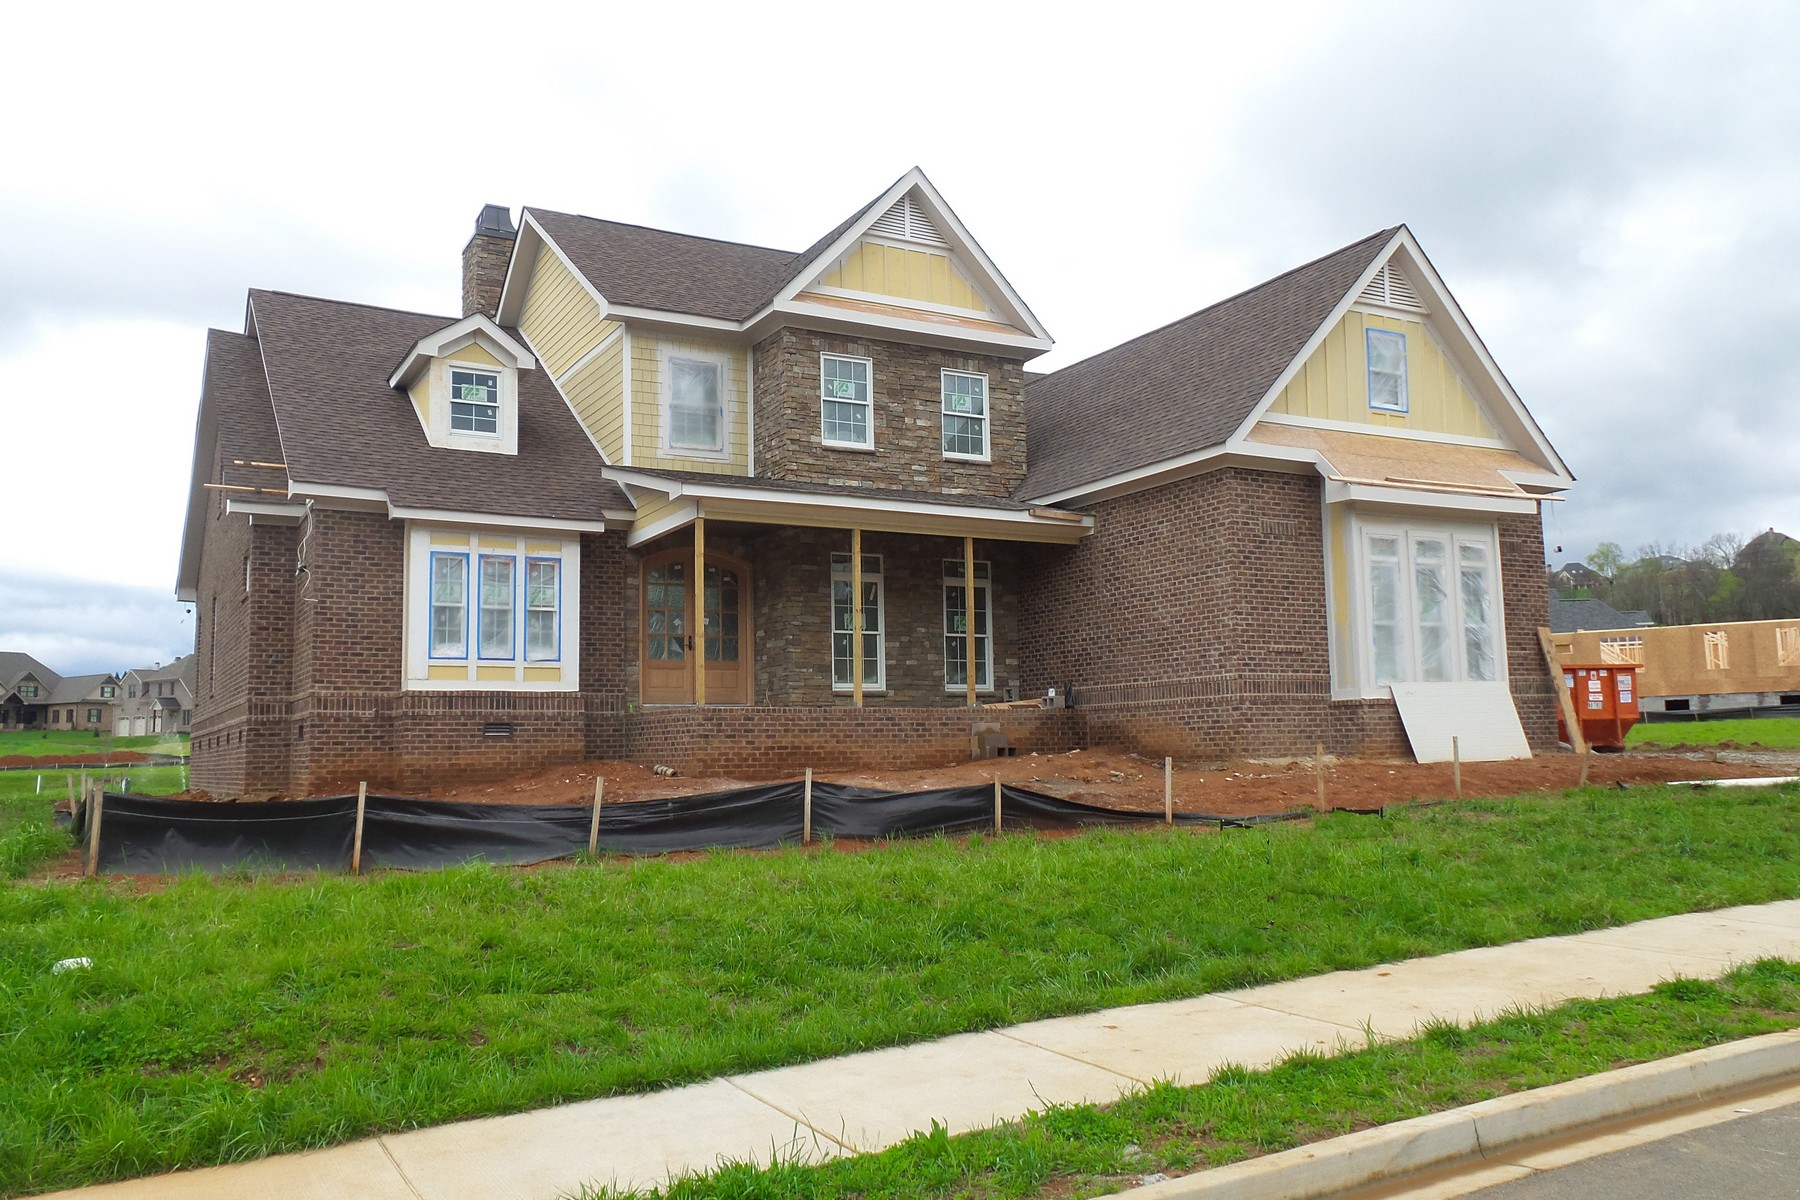 Single Family Home for Sale at New Construction! Home With Comfortable Elegance 12428 Waterslea Lane Knoxville, Tennessee, 37934 United States